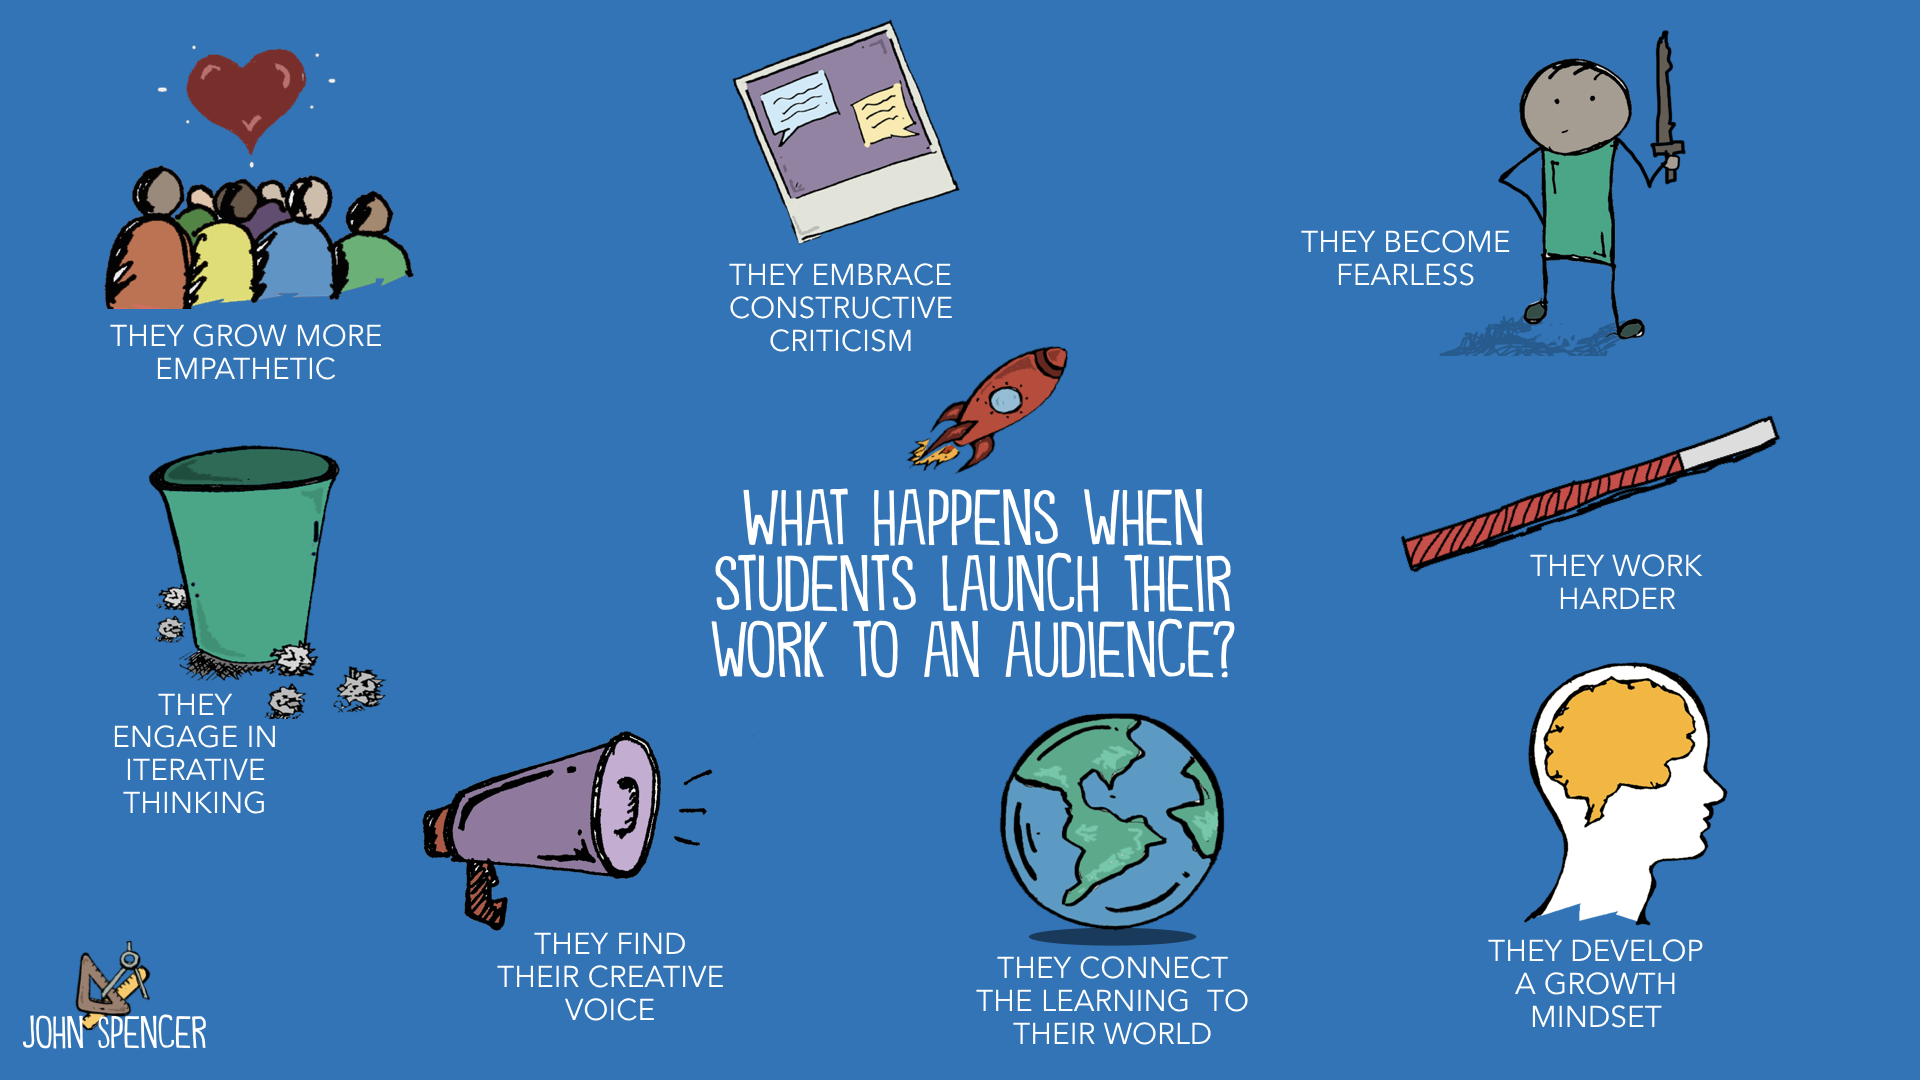 What happens when students launch their work to an audience?